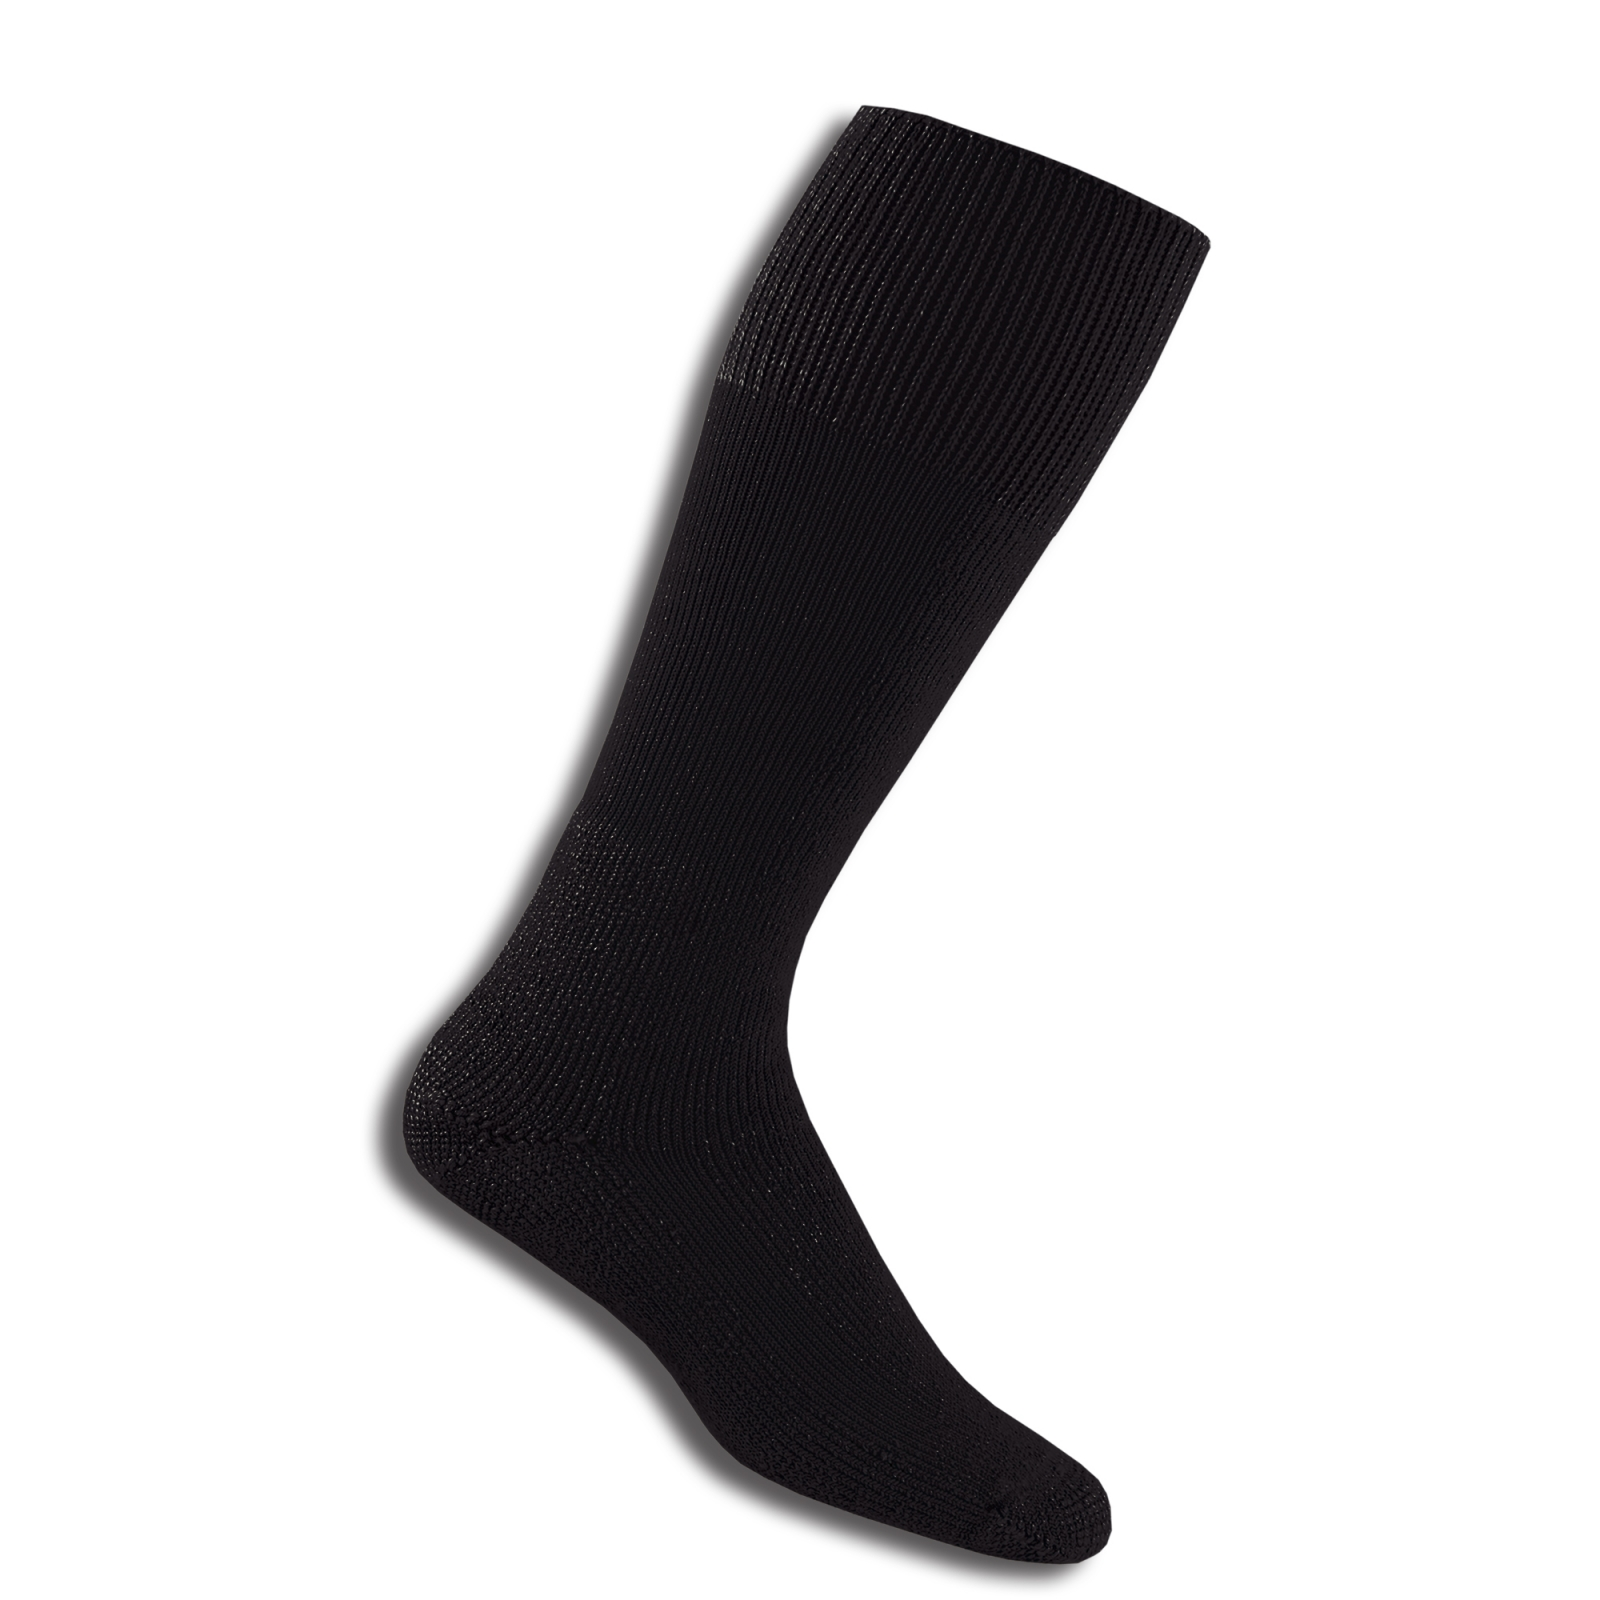 Thorlos Military Combat Boot Socks - Black